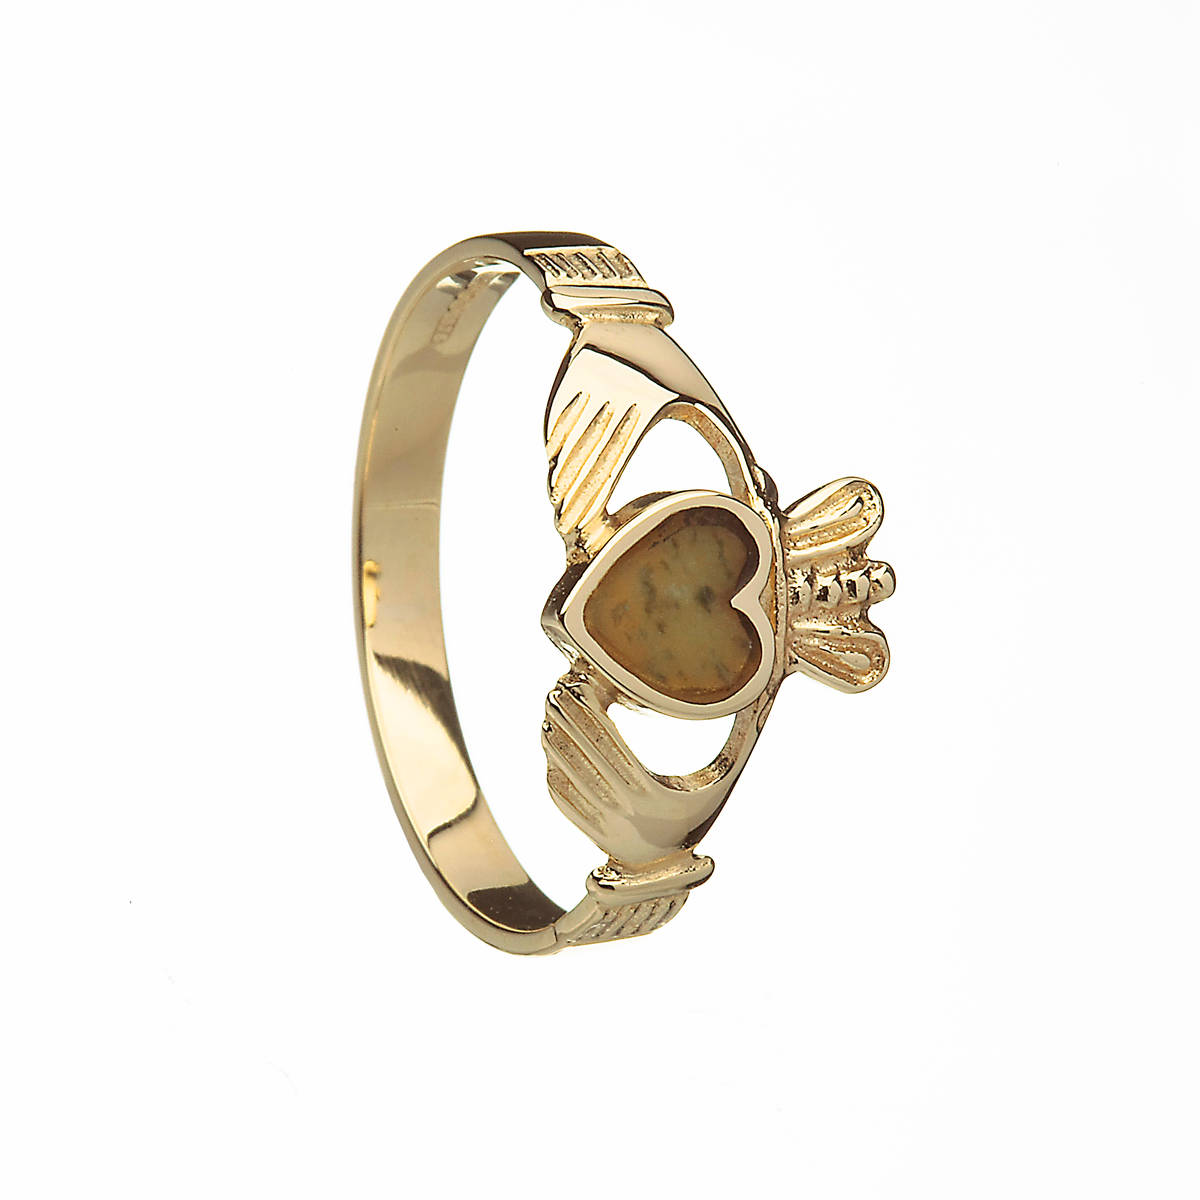 10 carat yellow gold ladies claddagh ring with Connemara Marble inset in the heart which is a unique marble only found in Connemara in the west of Ireland.